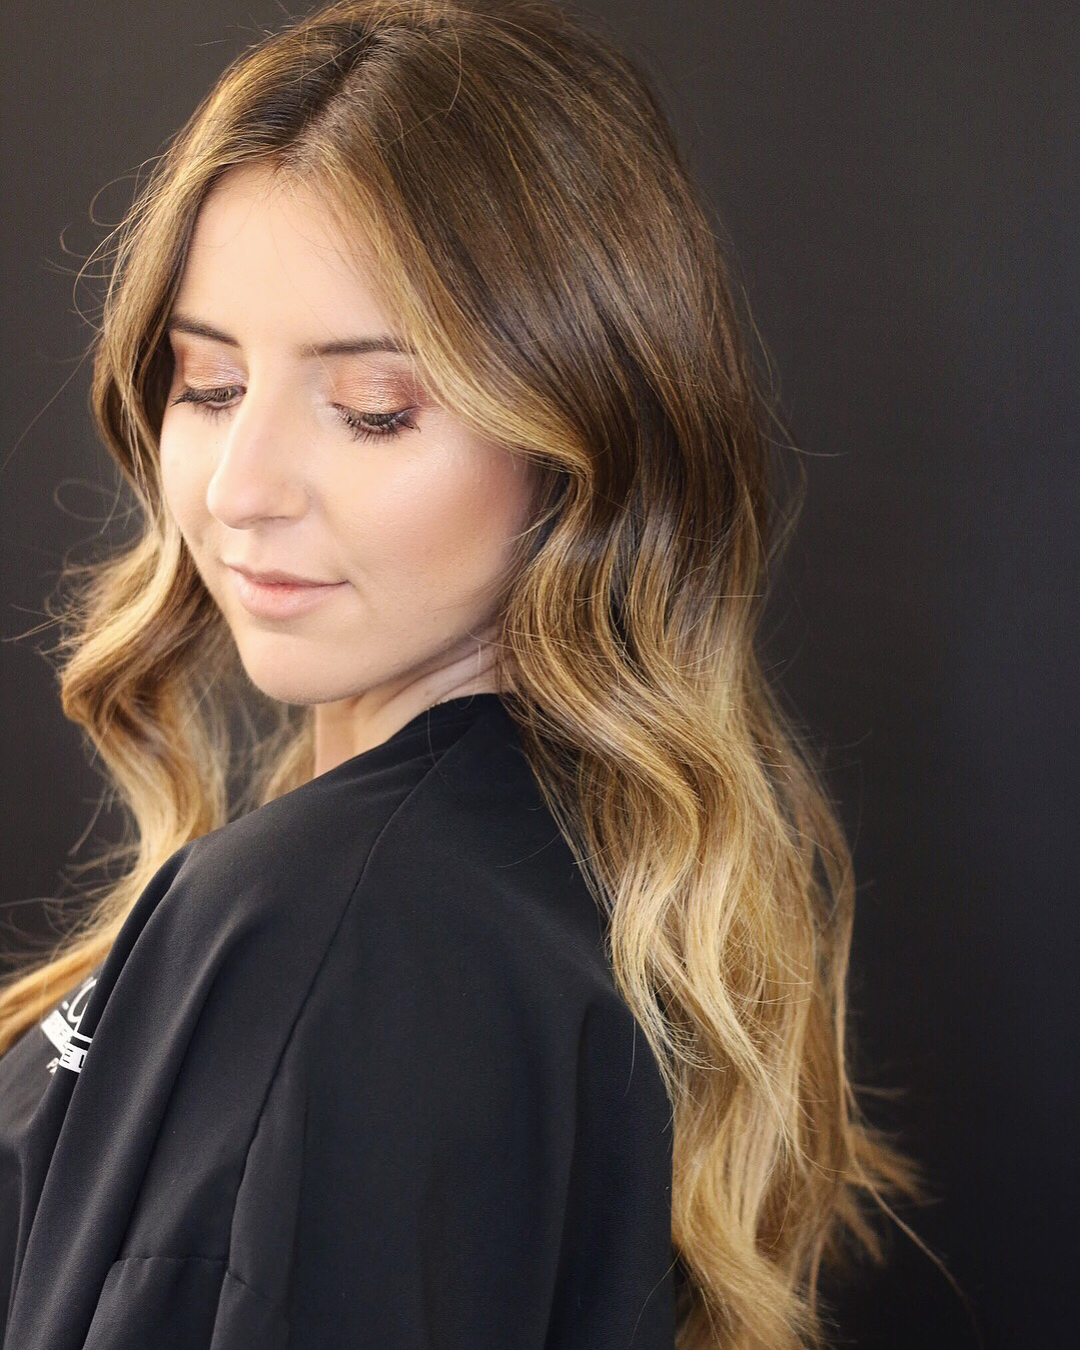 Hair We Love July 2nd - 8th 2018